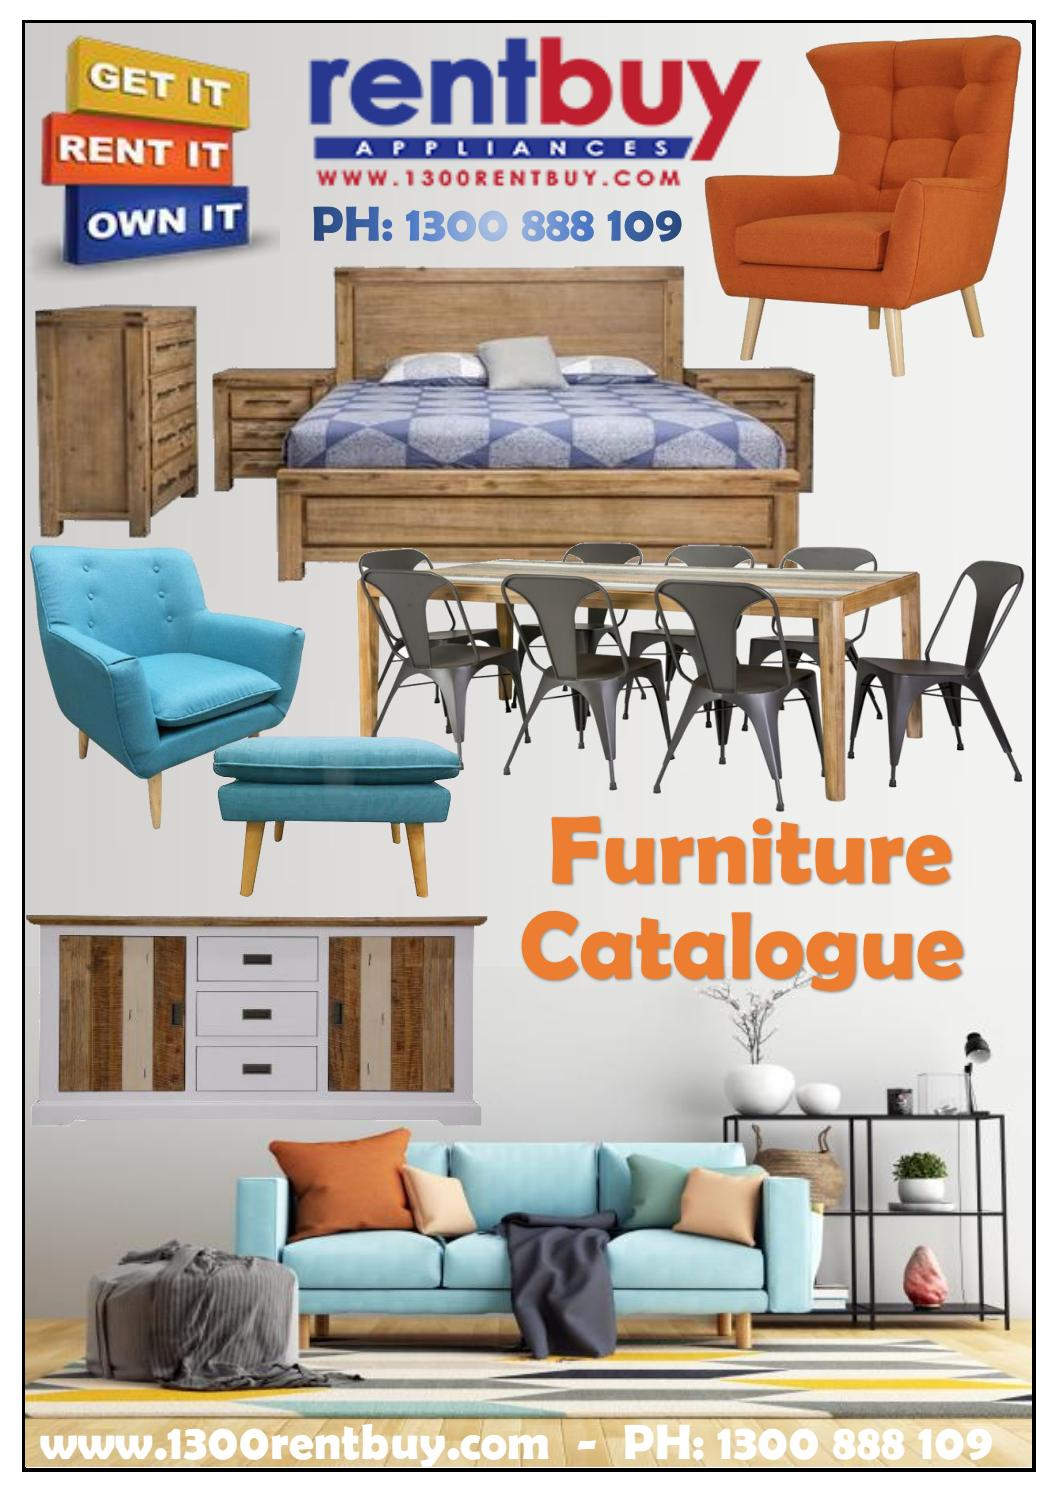 2019 Furniture Brochure By Rentbuy Appliances Issuu